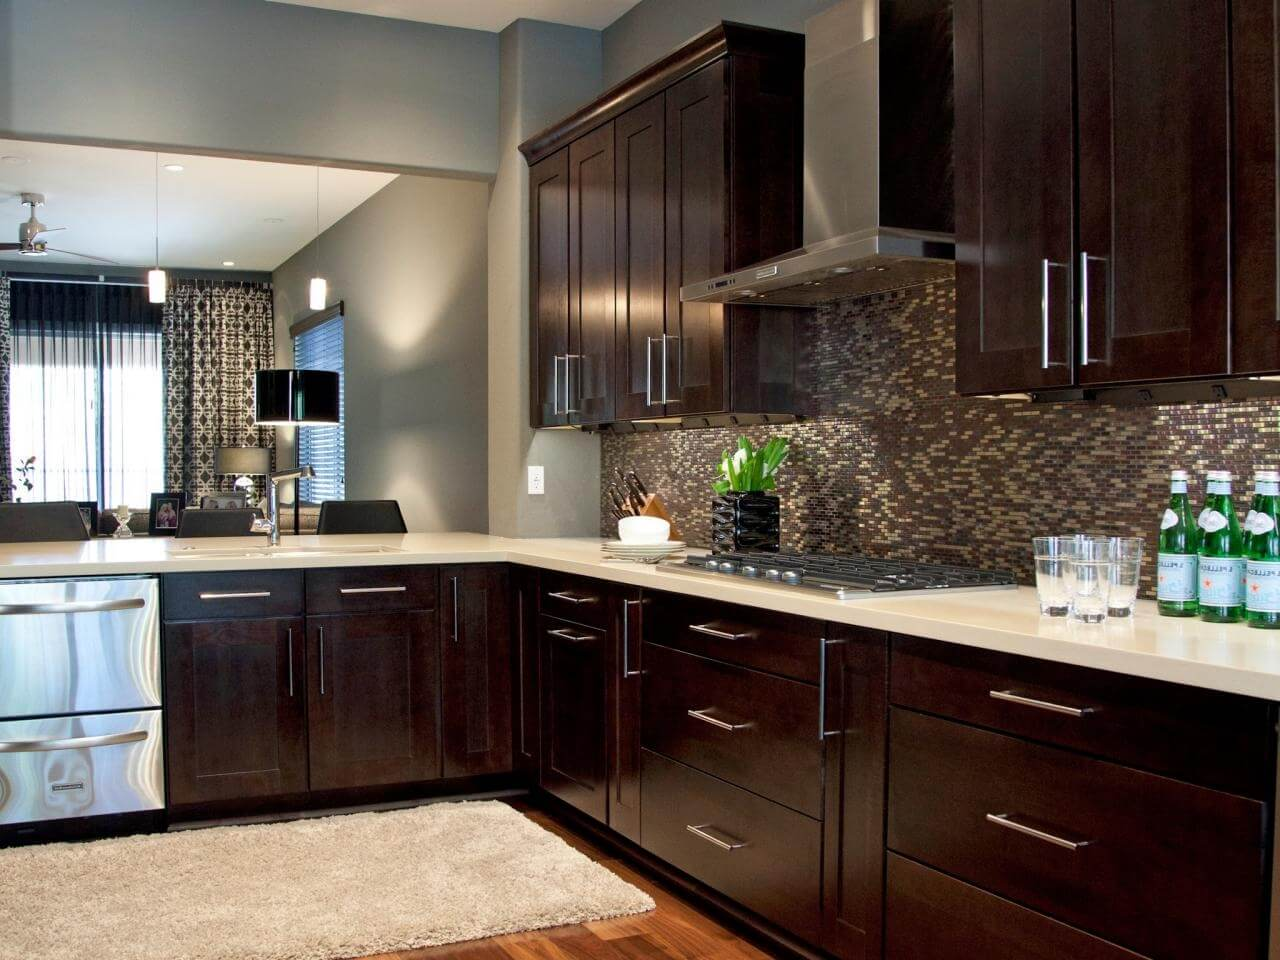 rta kitchen cabinets why you should use them in your kitchen 1823